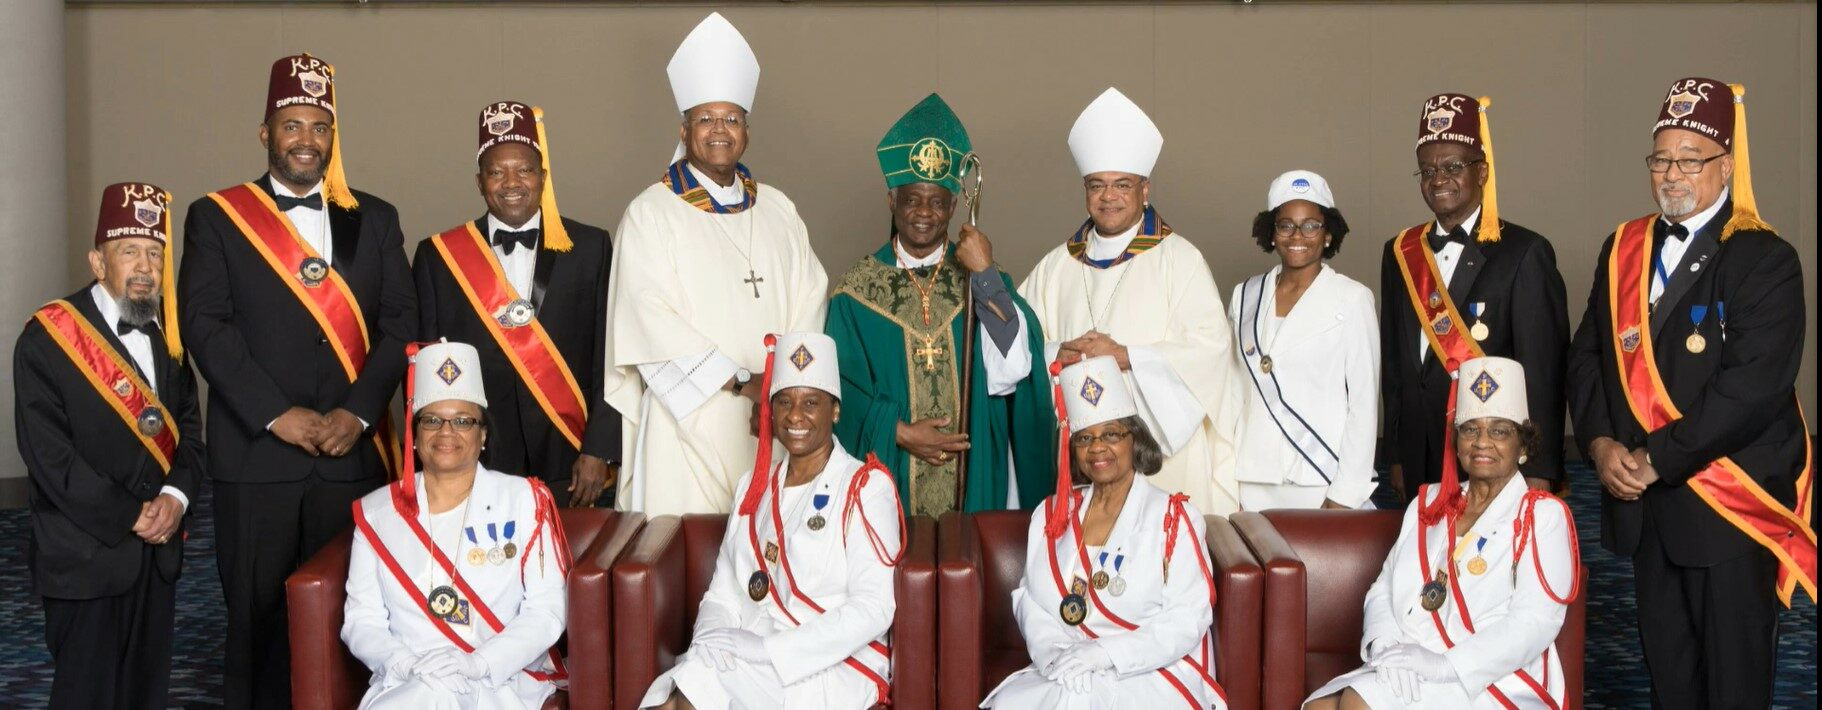 The Knights of Peter Claver: Black and Open to All